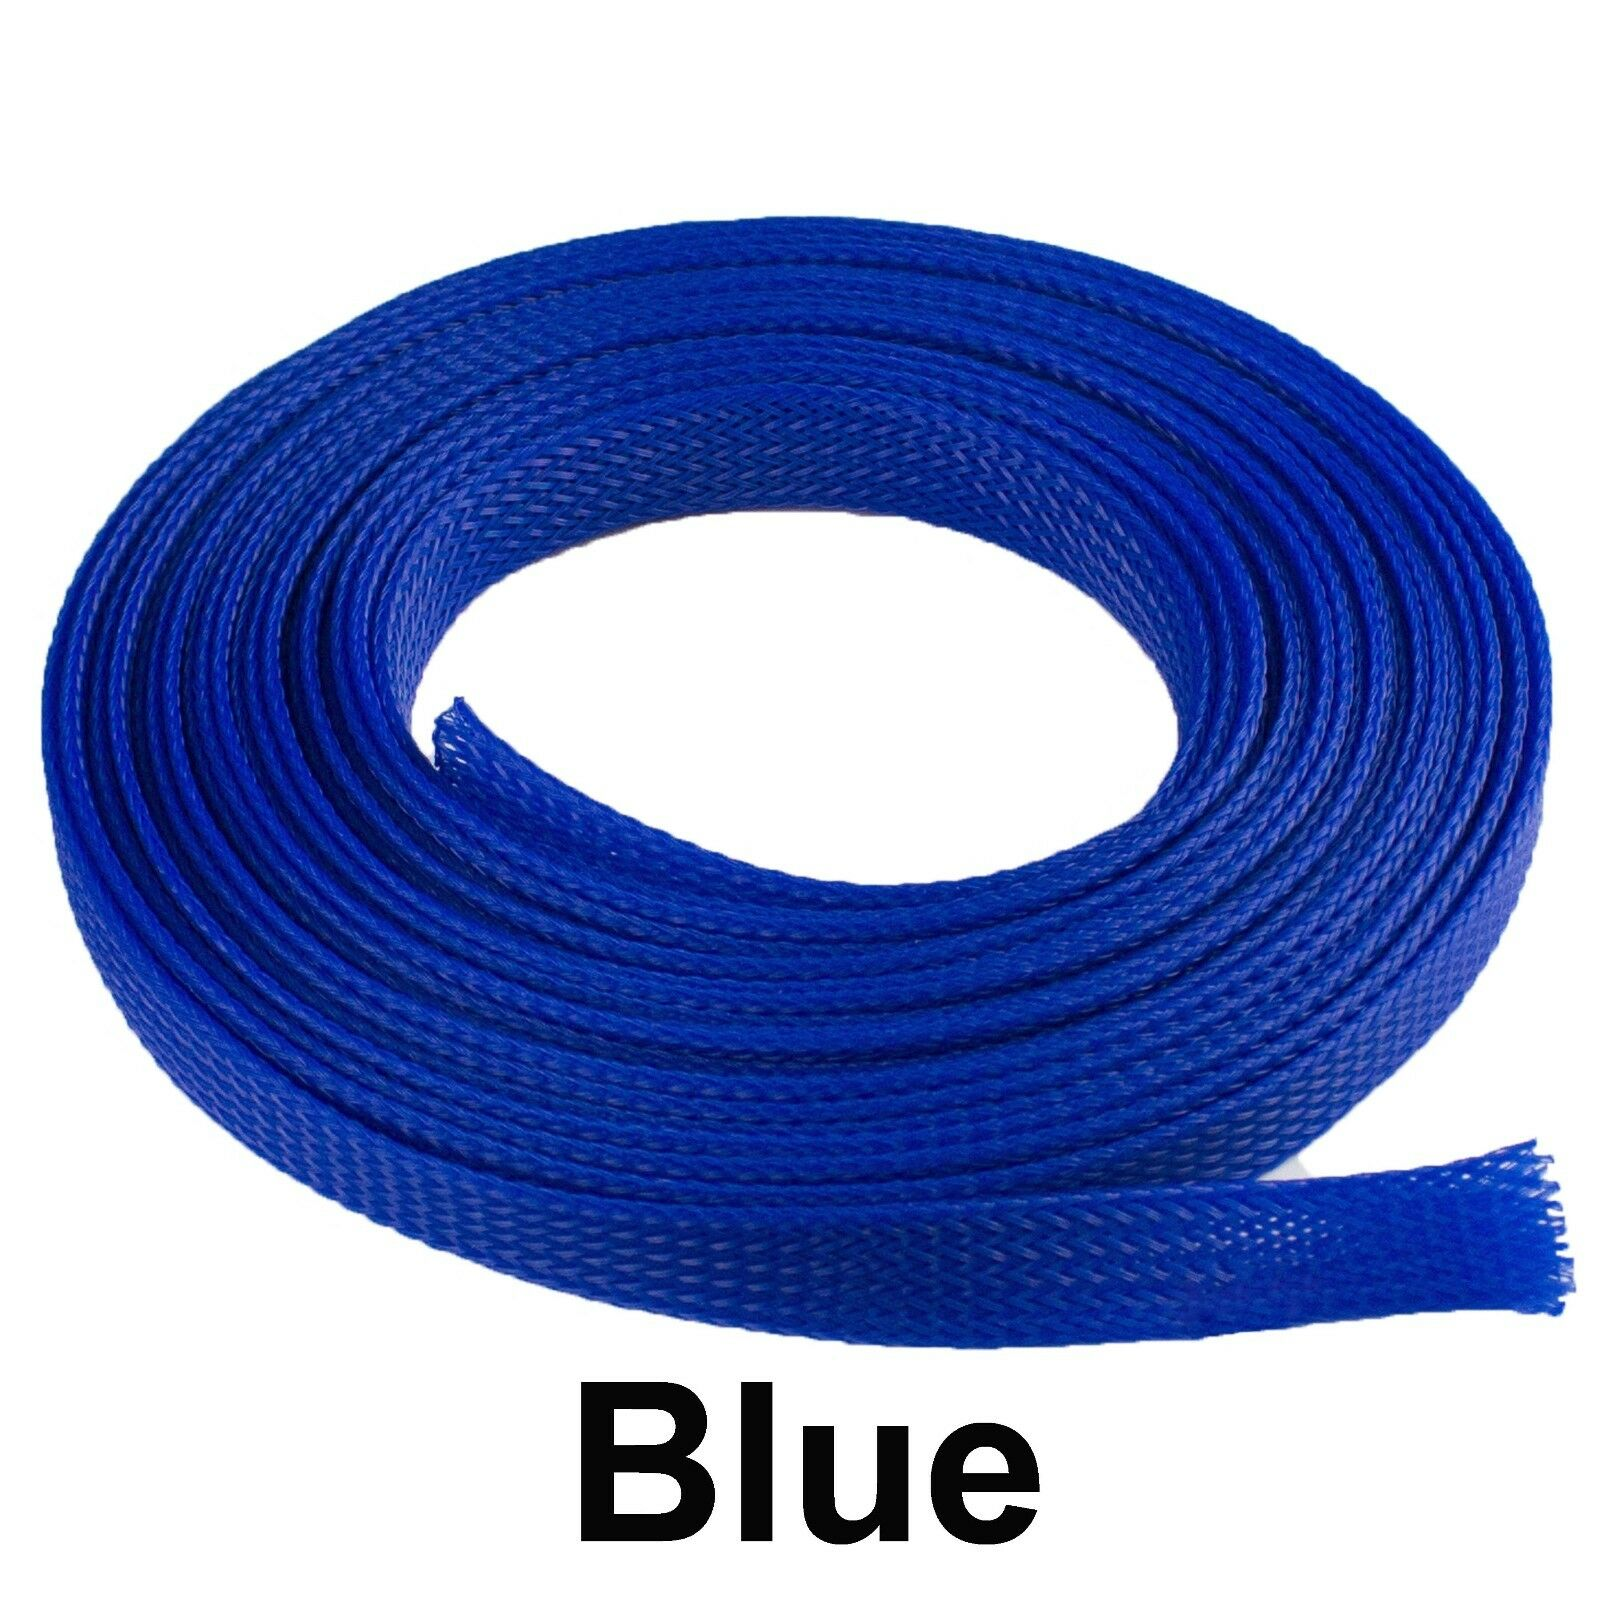 ALL SIZES & COLORS 5' FT - 100 Feet Expandable Cable Sleeving Braided Tubing LOT Blue